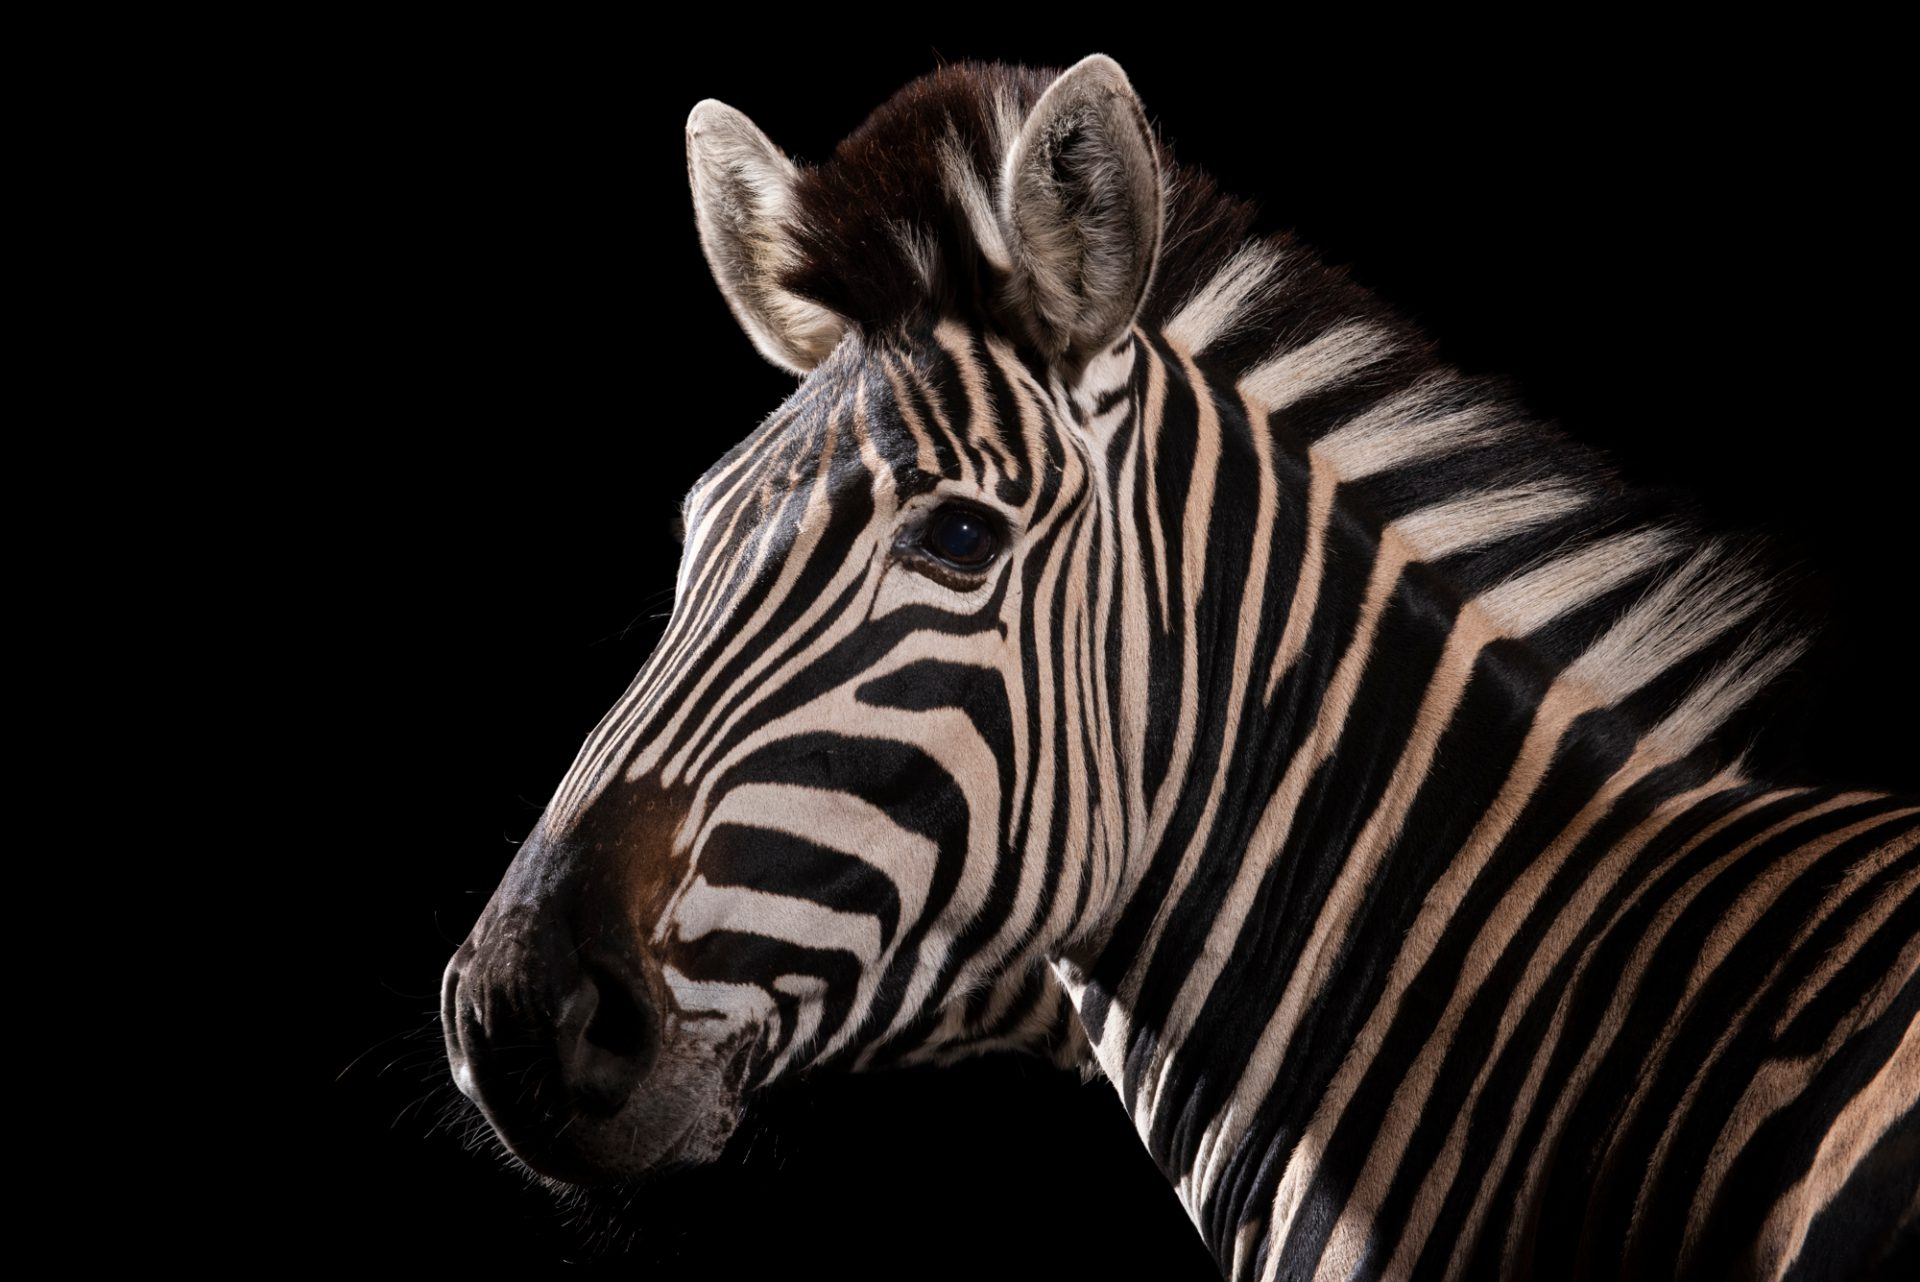 Photo: Chapman's zebra (Equus quagga chapmani) at Wroclaw Zoo.